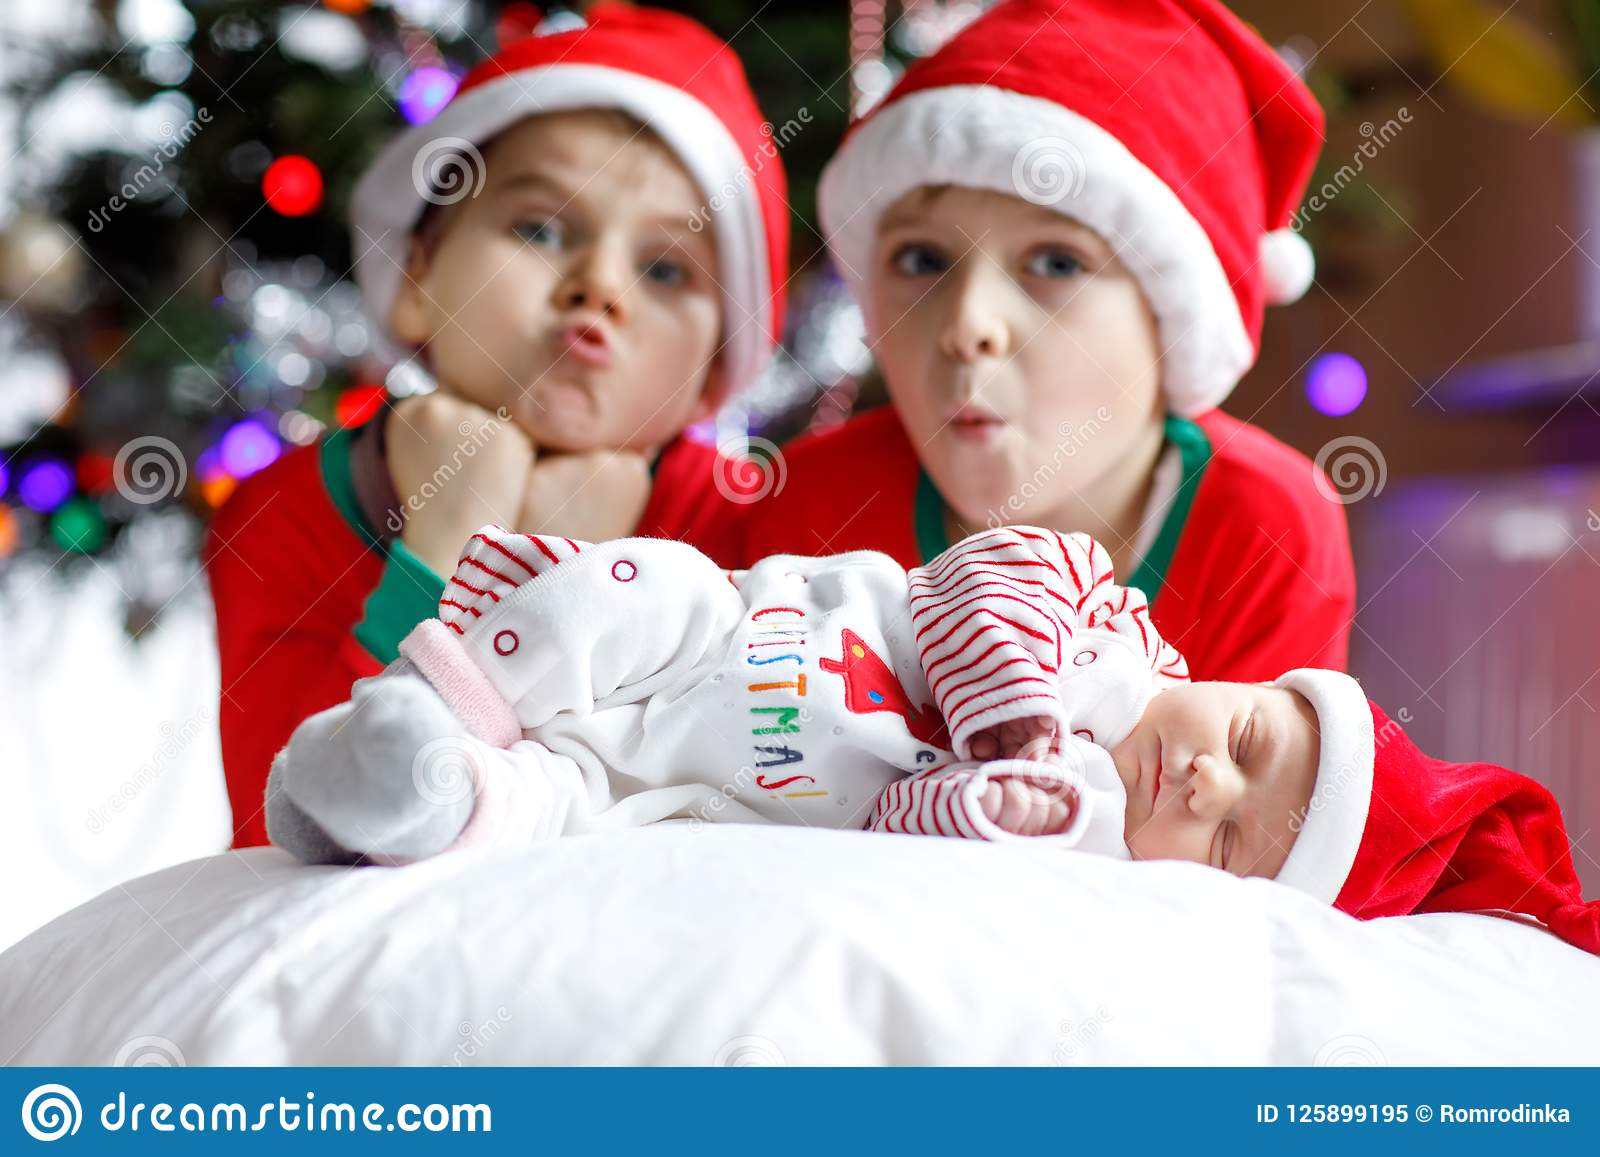 bb76756dc3d One week old newborn baby girl and two siblings kid boys in Santa Claus hats  near Christmas tree with colorful garland lights on background.